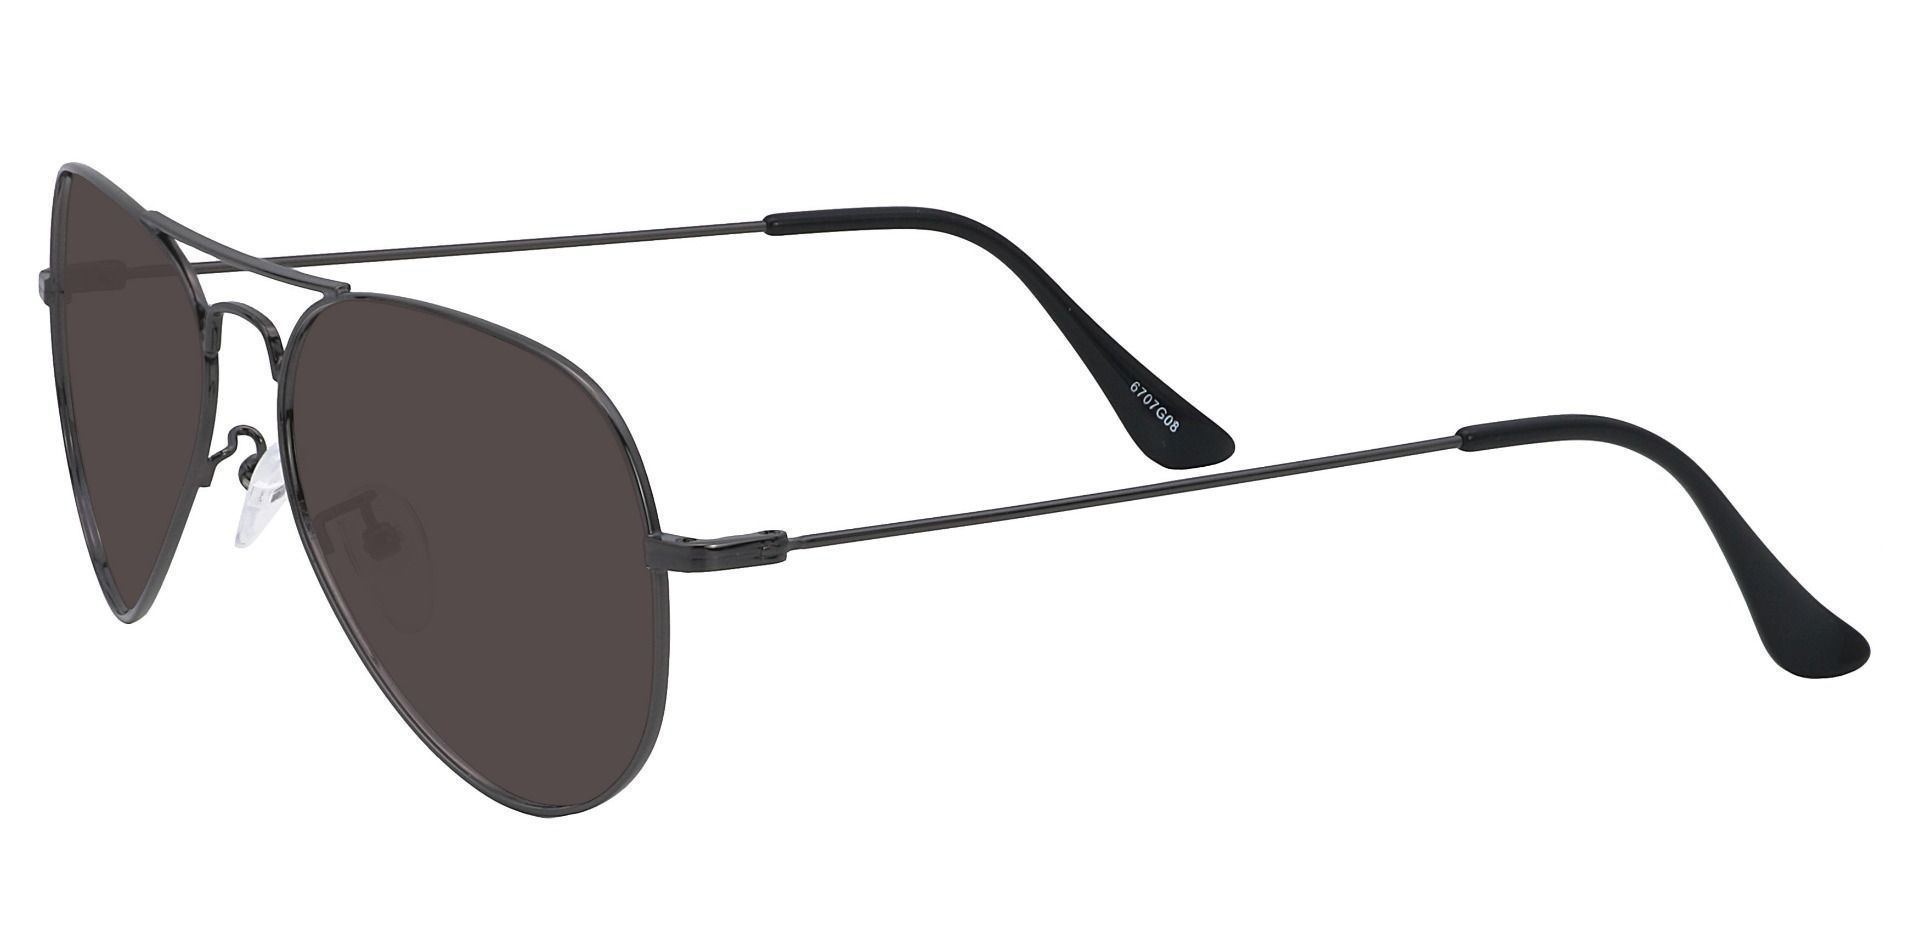 Memphis Aviator Single Vision Sunglasses - Gray Frame With Gray Lenses